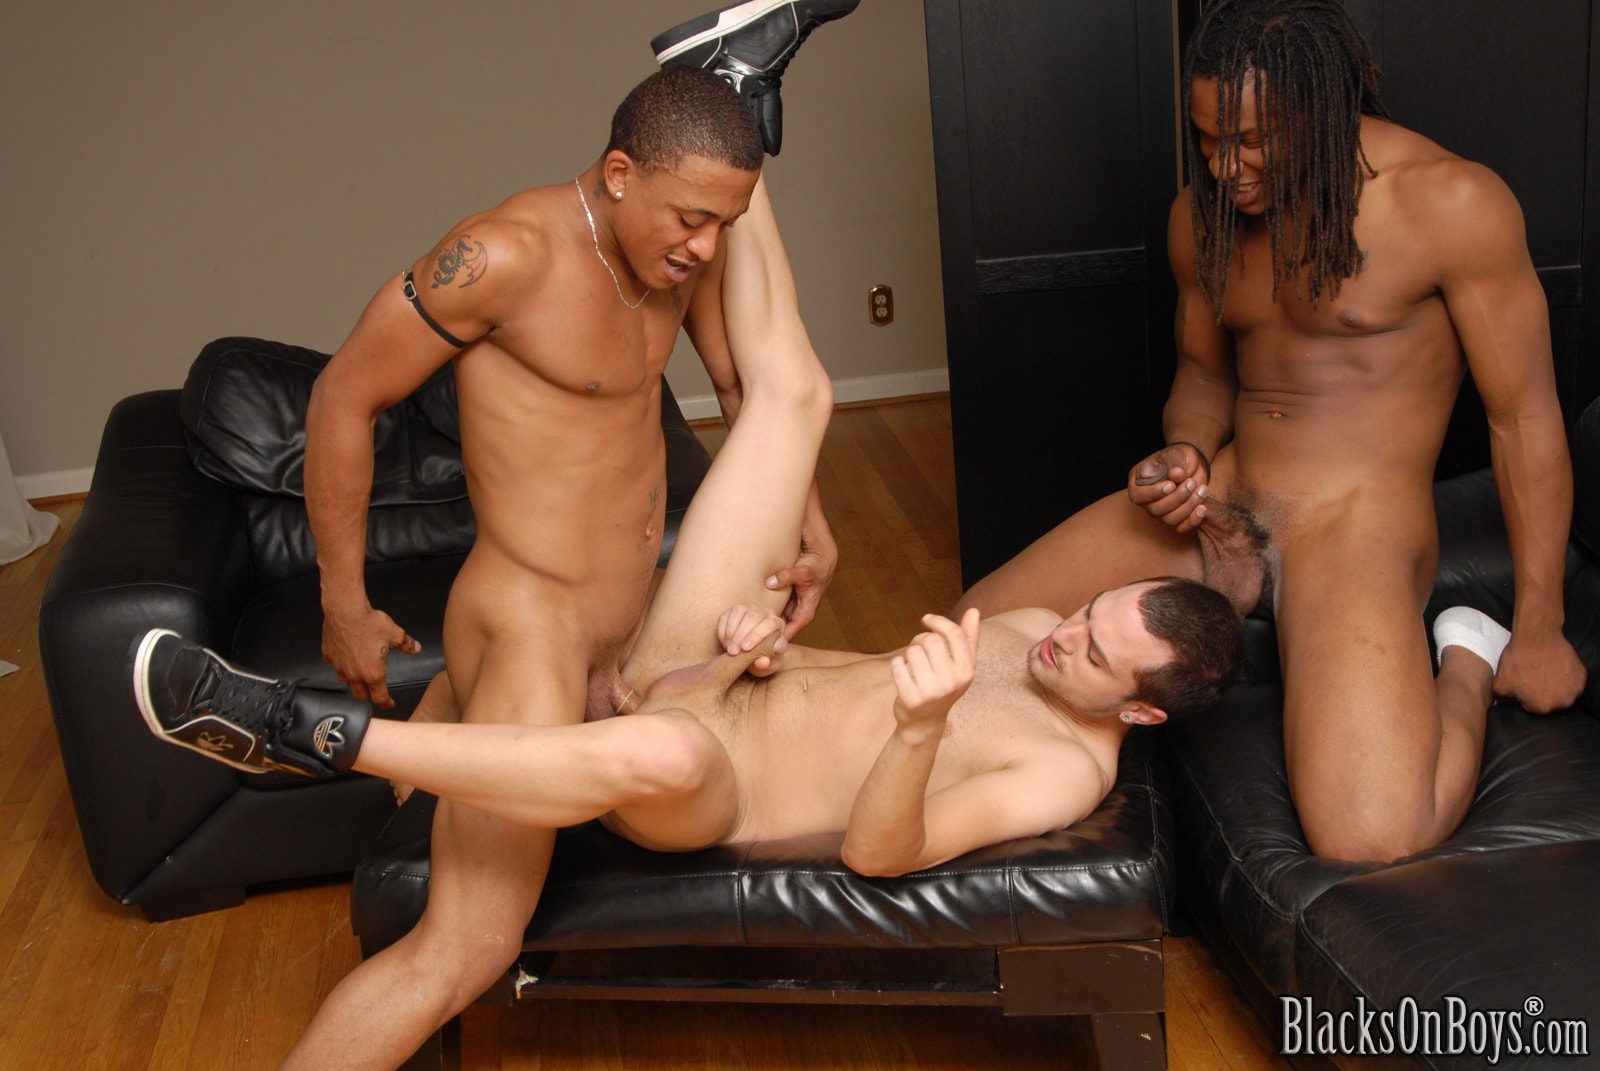 Dogfart Men '- Blacks On Boys' starring Vinnie Tuscano (Photo 14)